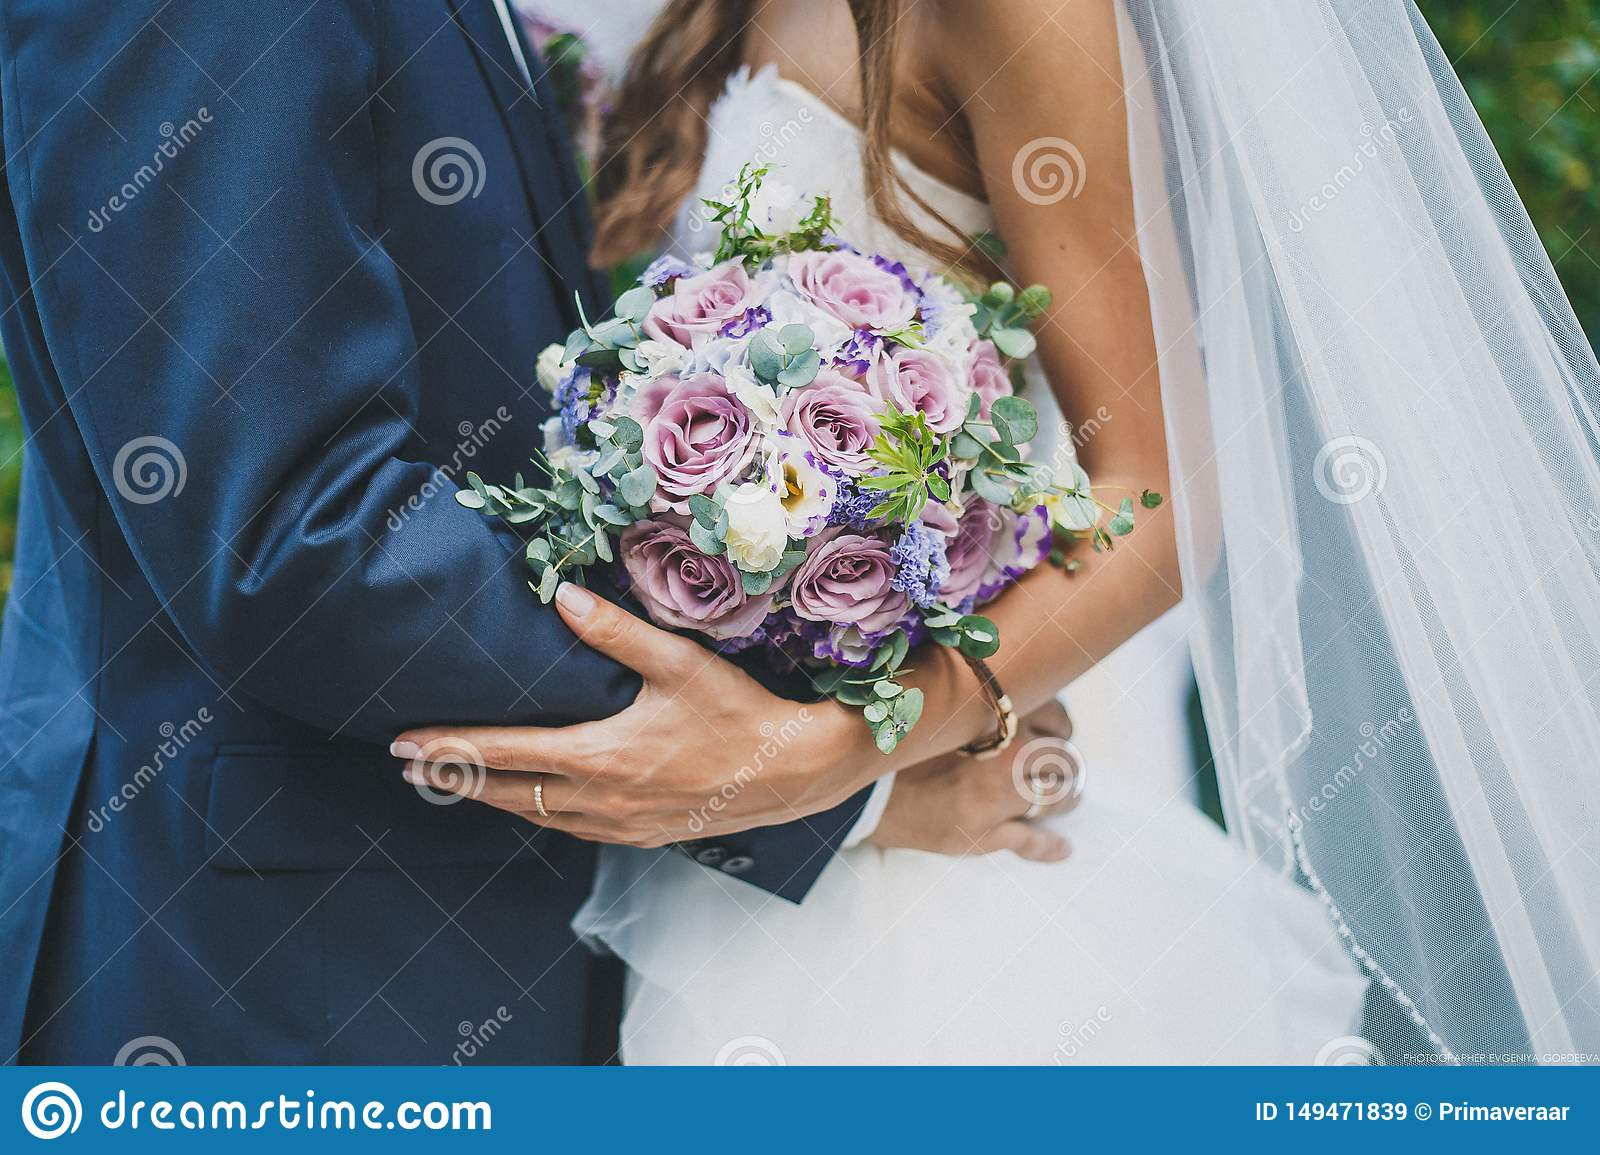 the bride and groom are holding a wedding bouquet